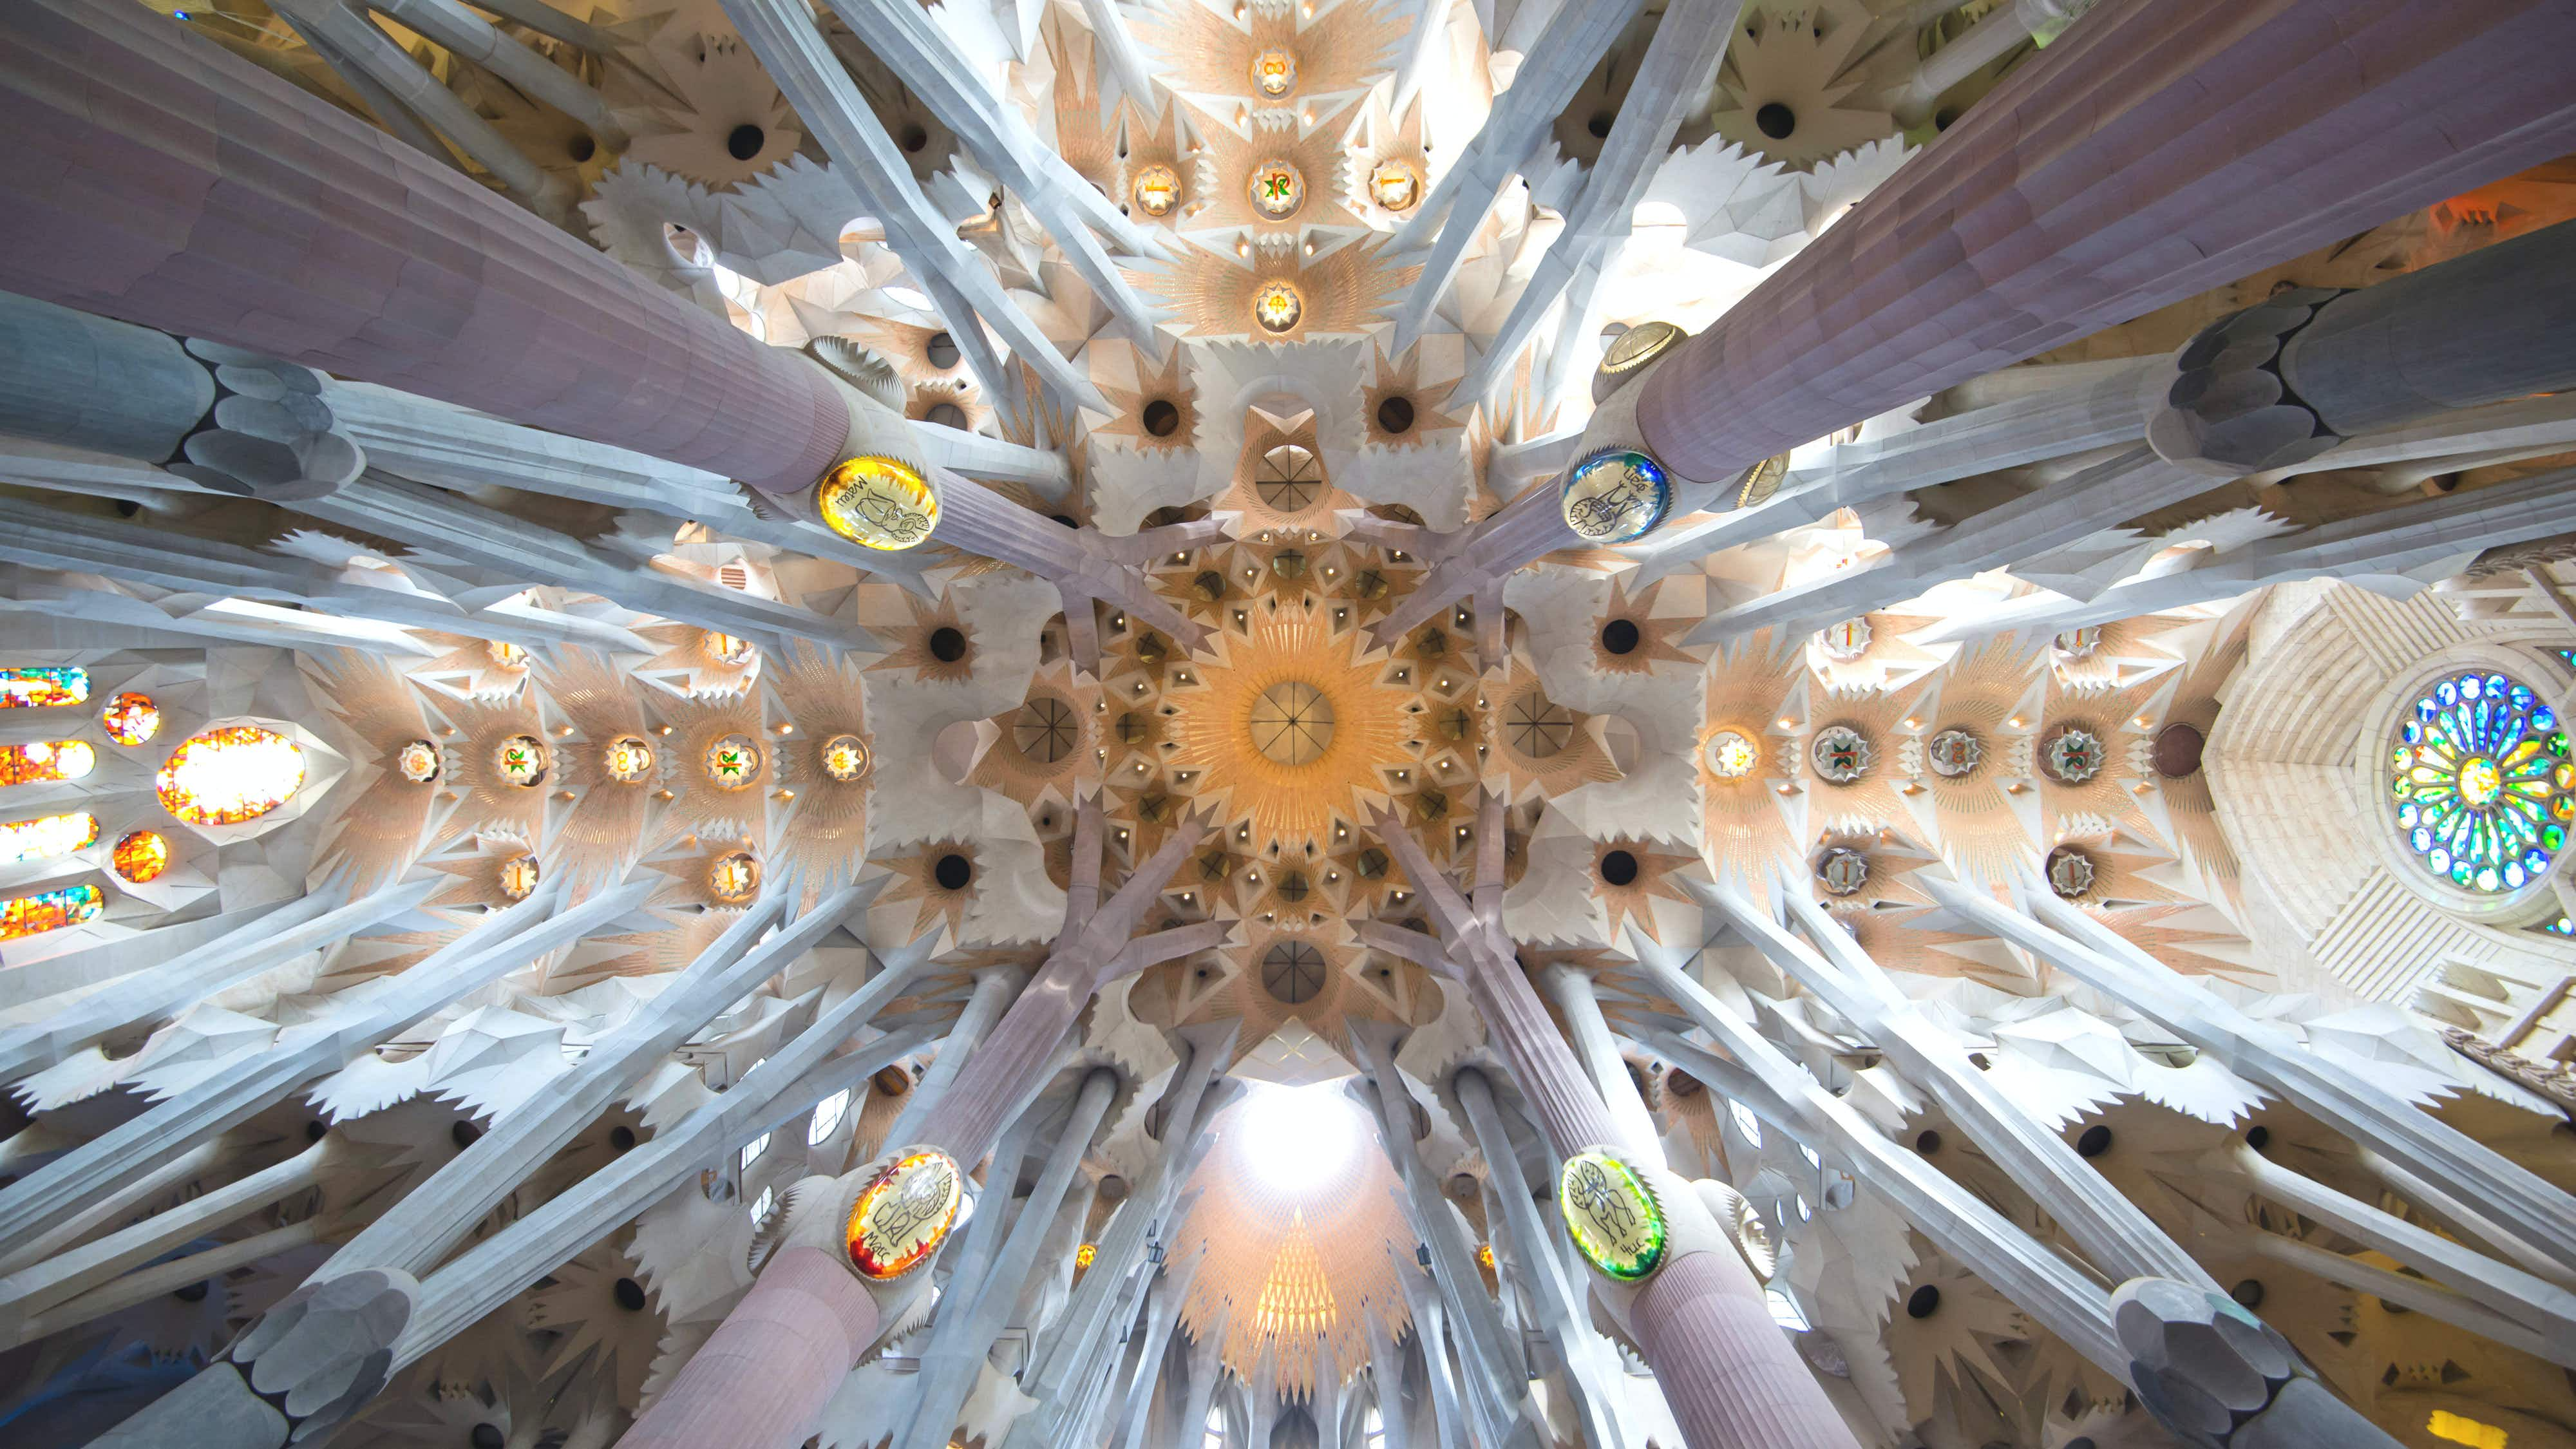 Dazzling designs: top 10 cities for architecture lovers